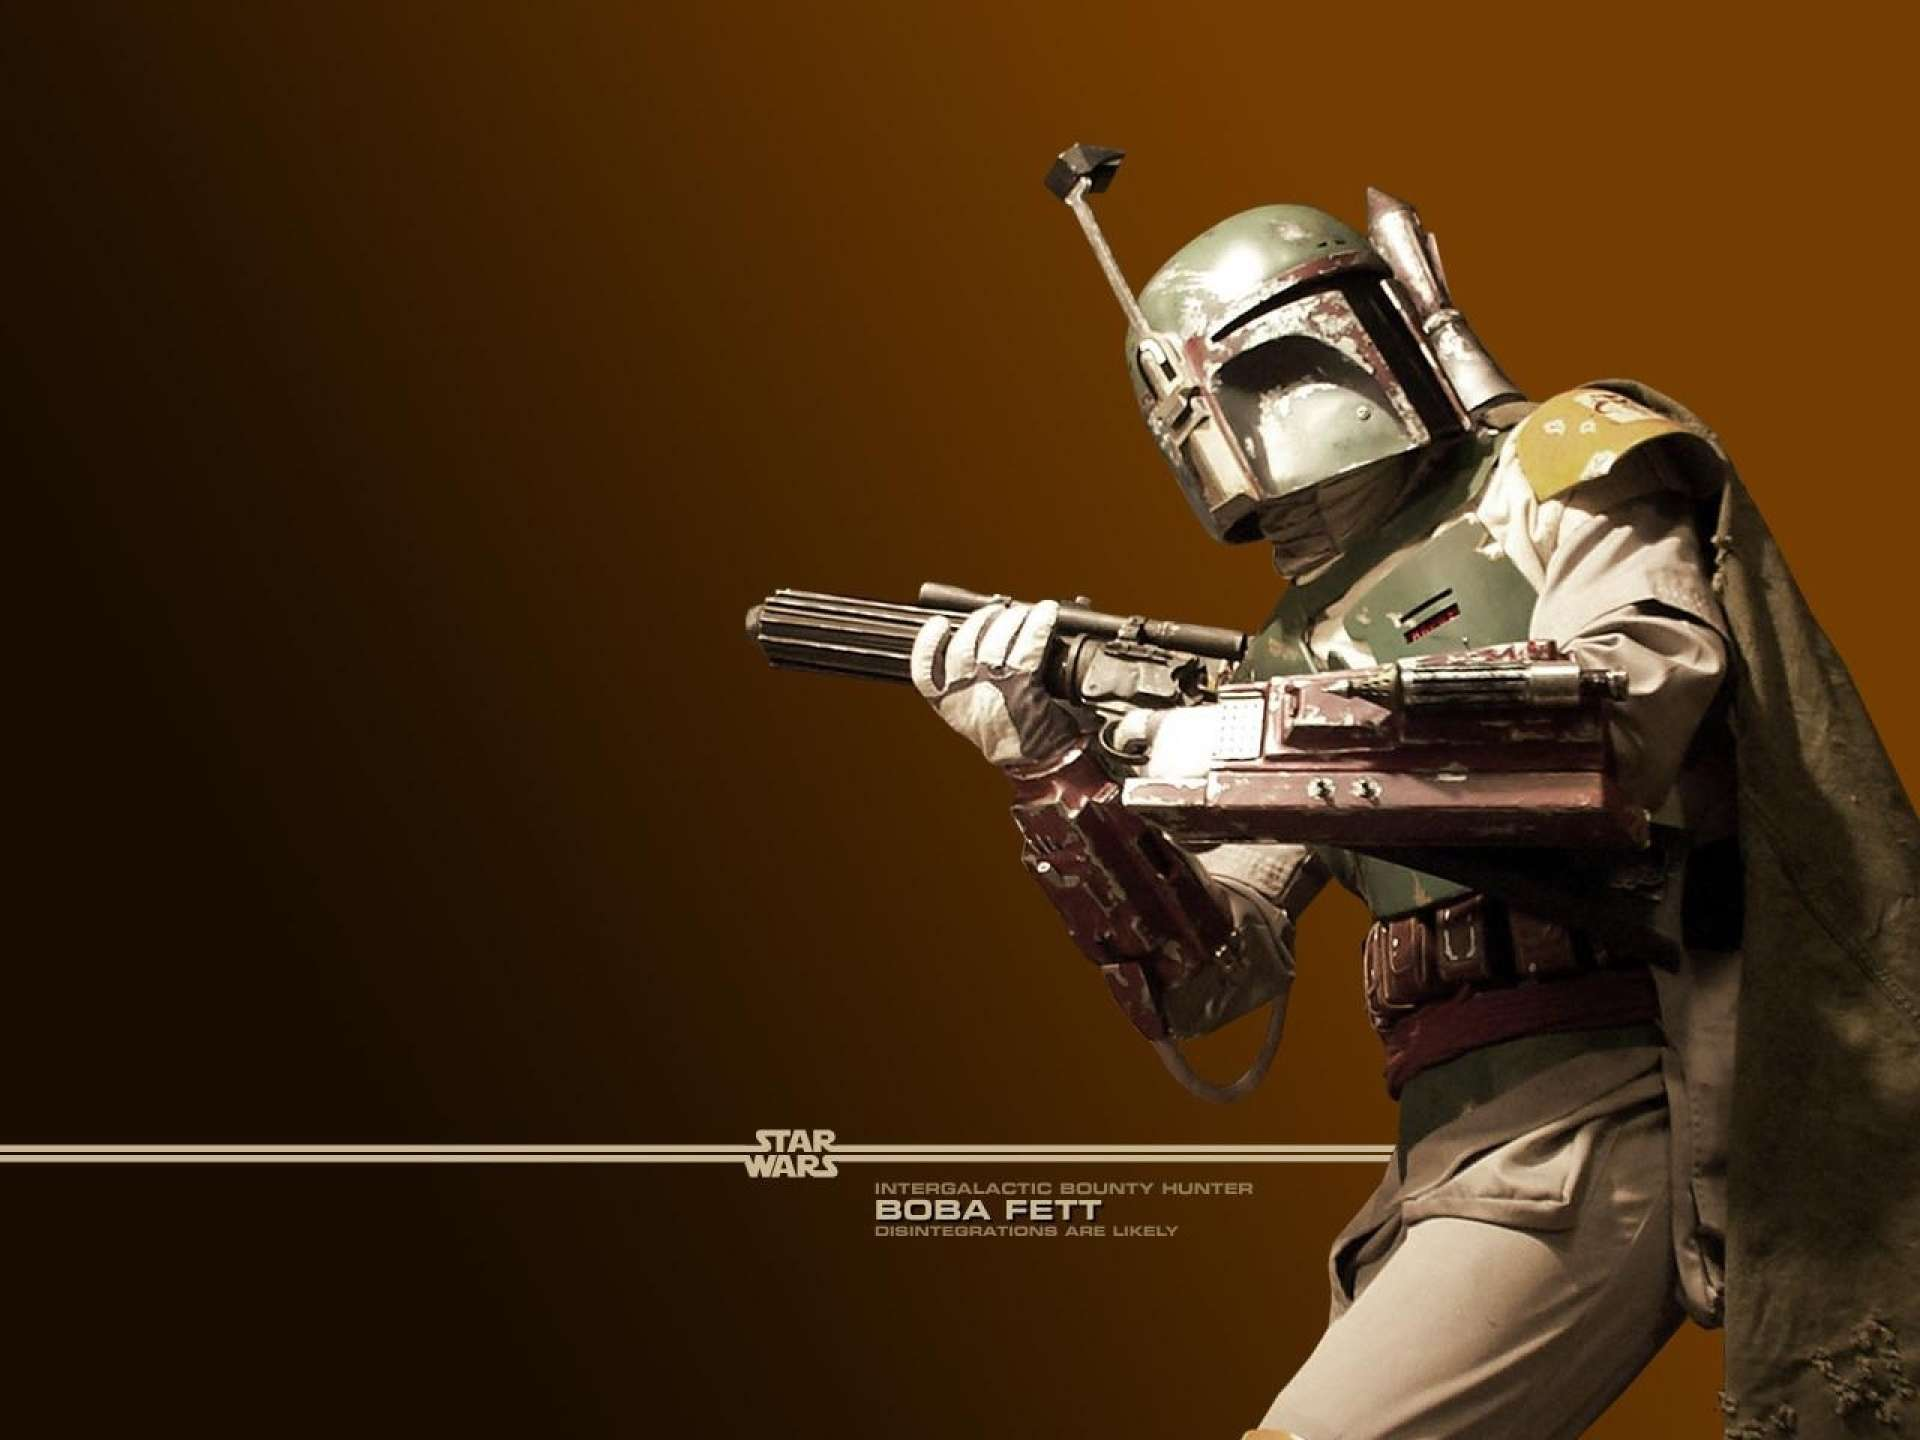 Star Wars Wallpaper 181